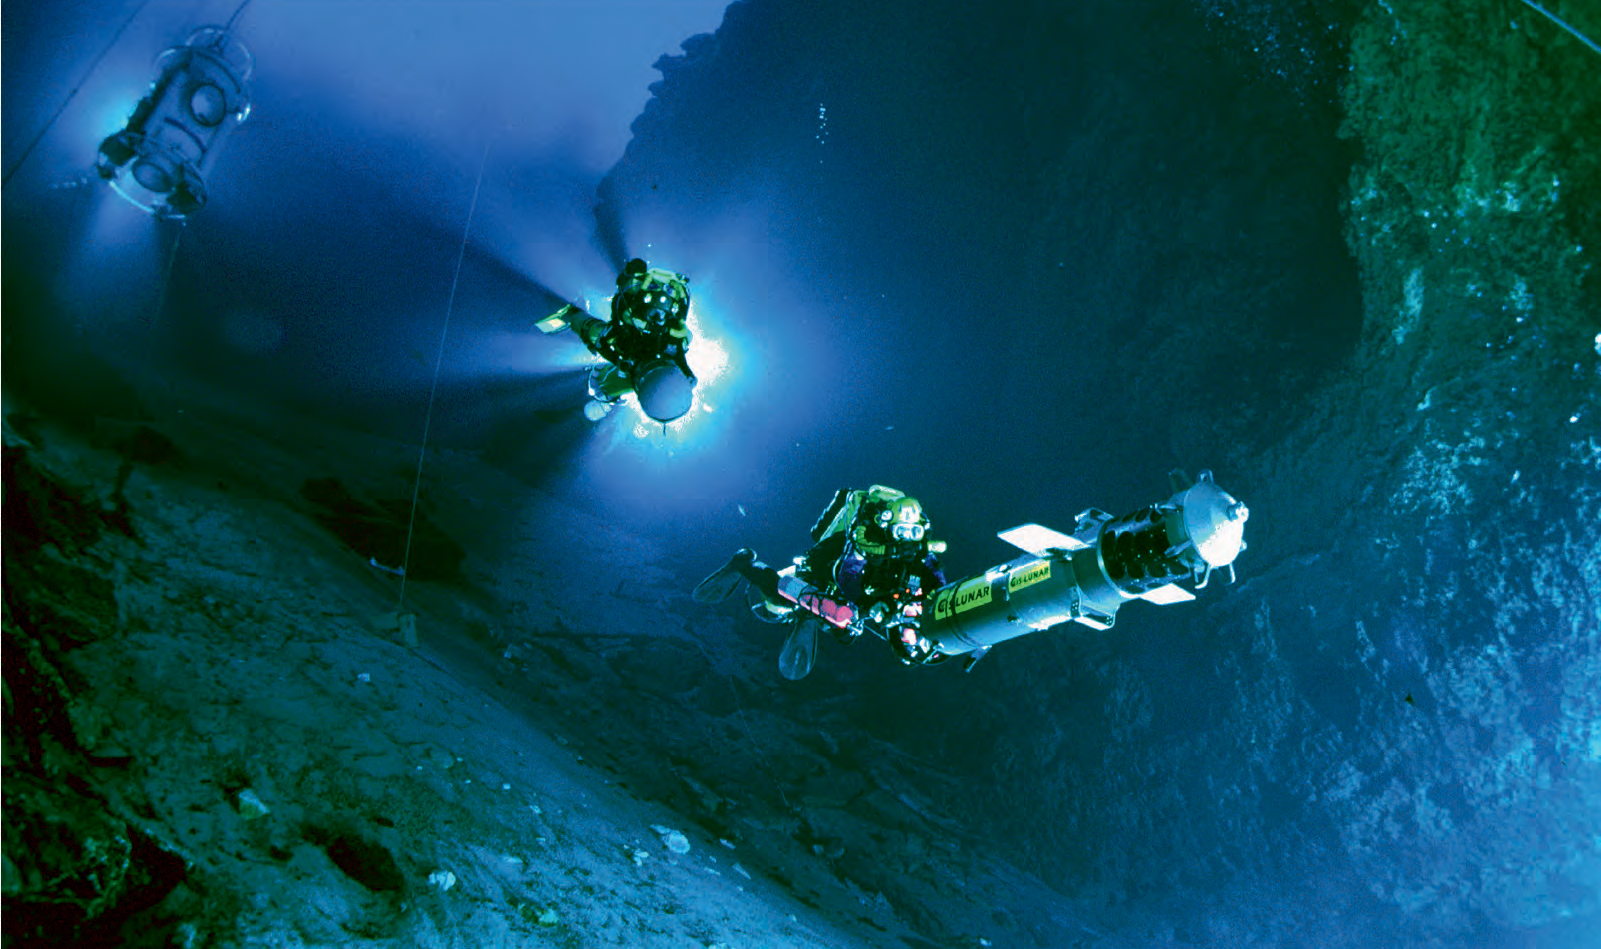 """I'm driving the digital wall mapper, pausing briefly for Wes Skiles to get the shot for National Geographic."" <em>Photo courtesy of the U.S. Deep Caving Team Inc. (Jill Heinerth)</em>"